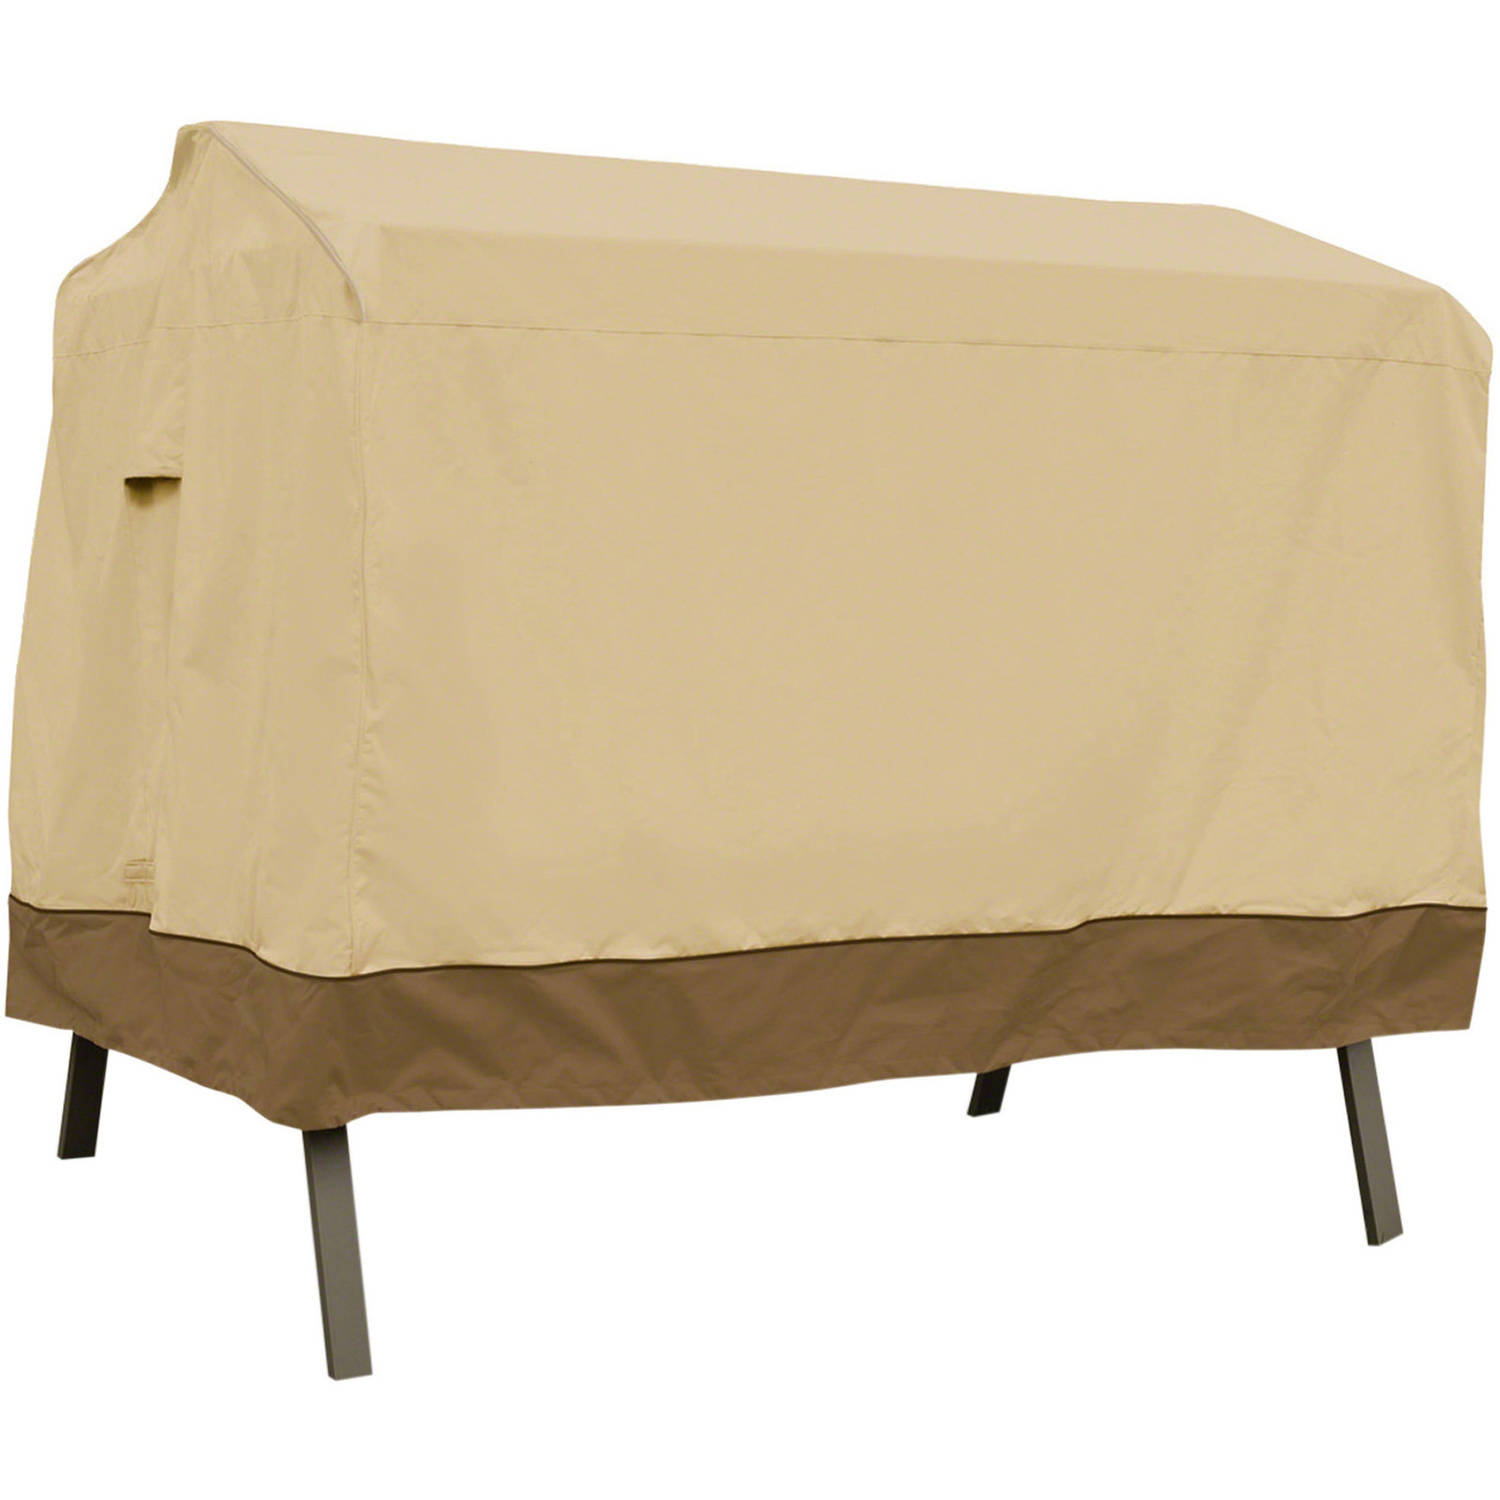 Classic Accessories Veranda 2 Seater Patio Canopy Swing Cover   Durable And  Water Resistant Outdoor Furniture Cover (72962)   Walmart.com